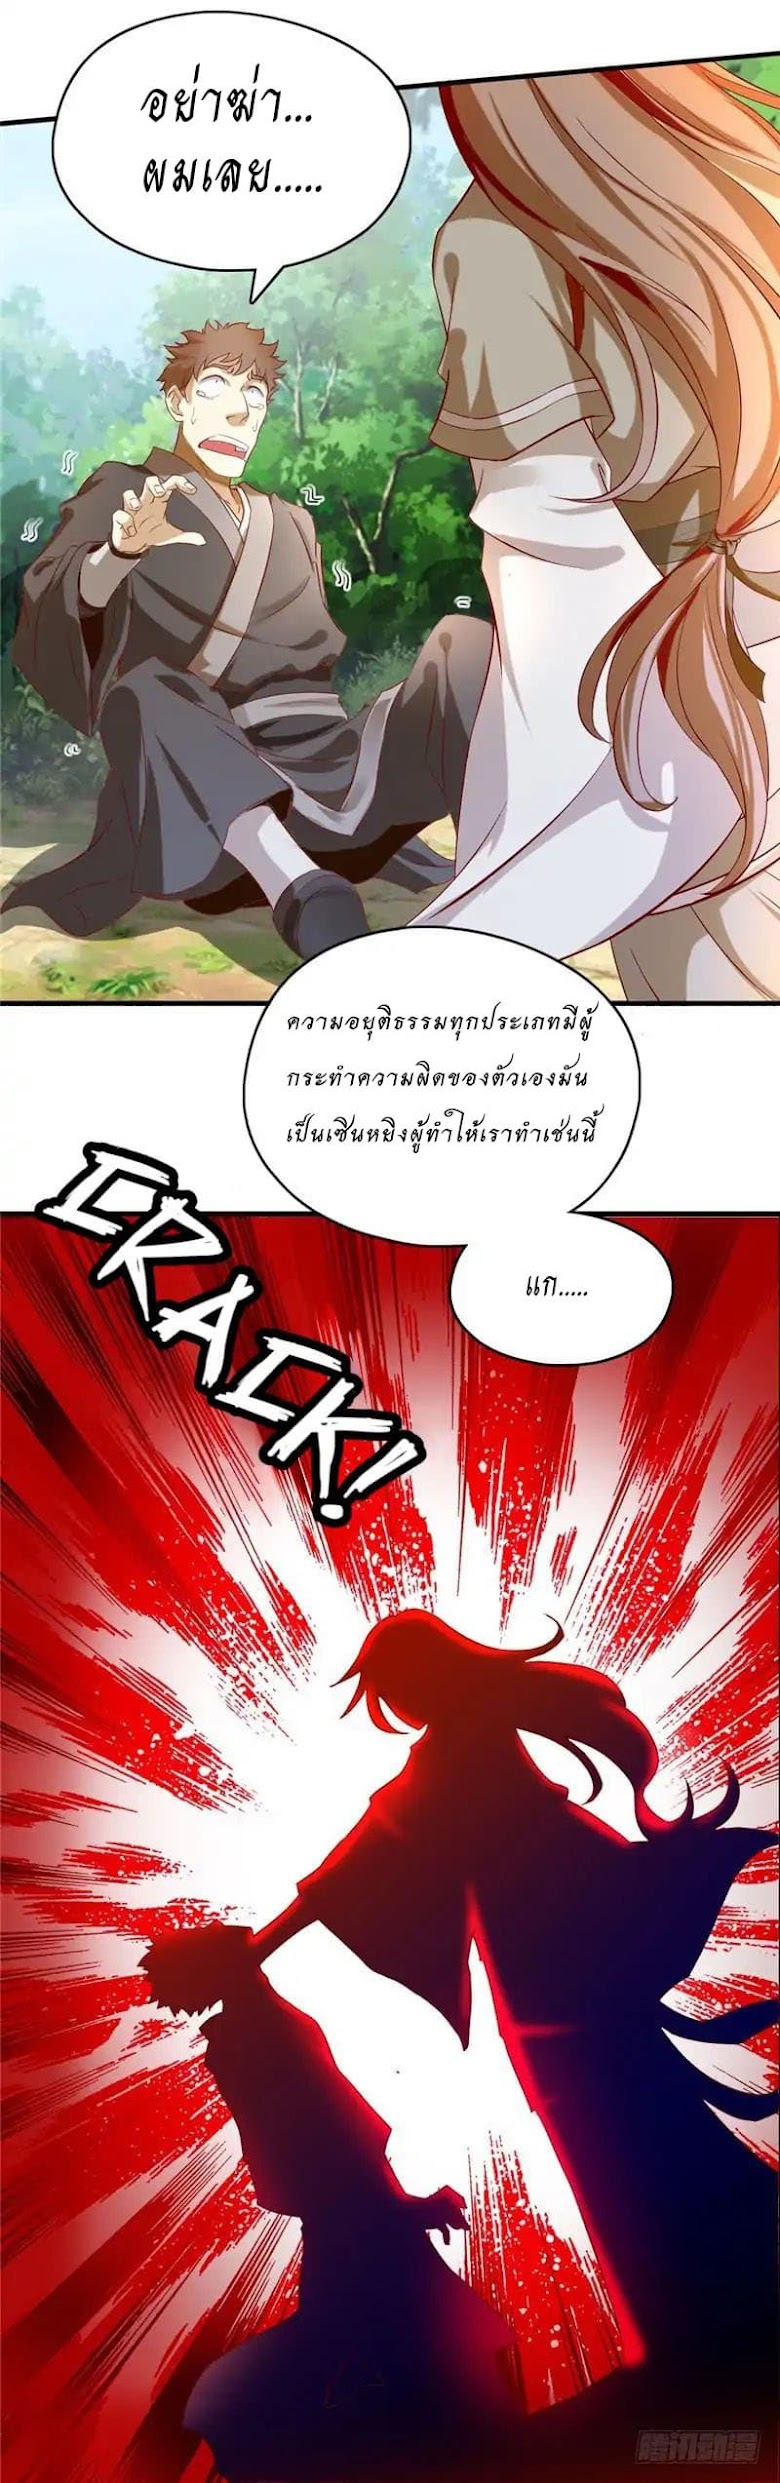 The Evil King s Wicked Consort - หน้า 8